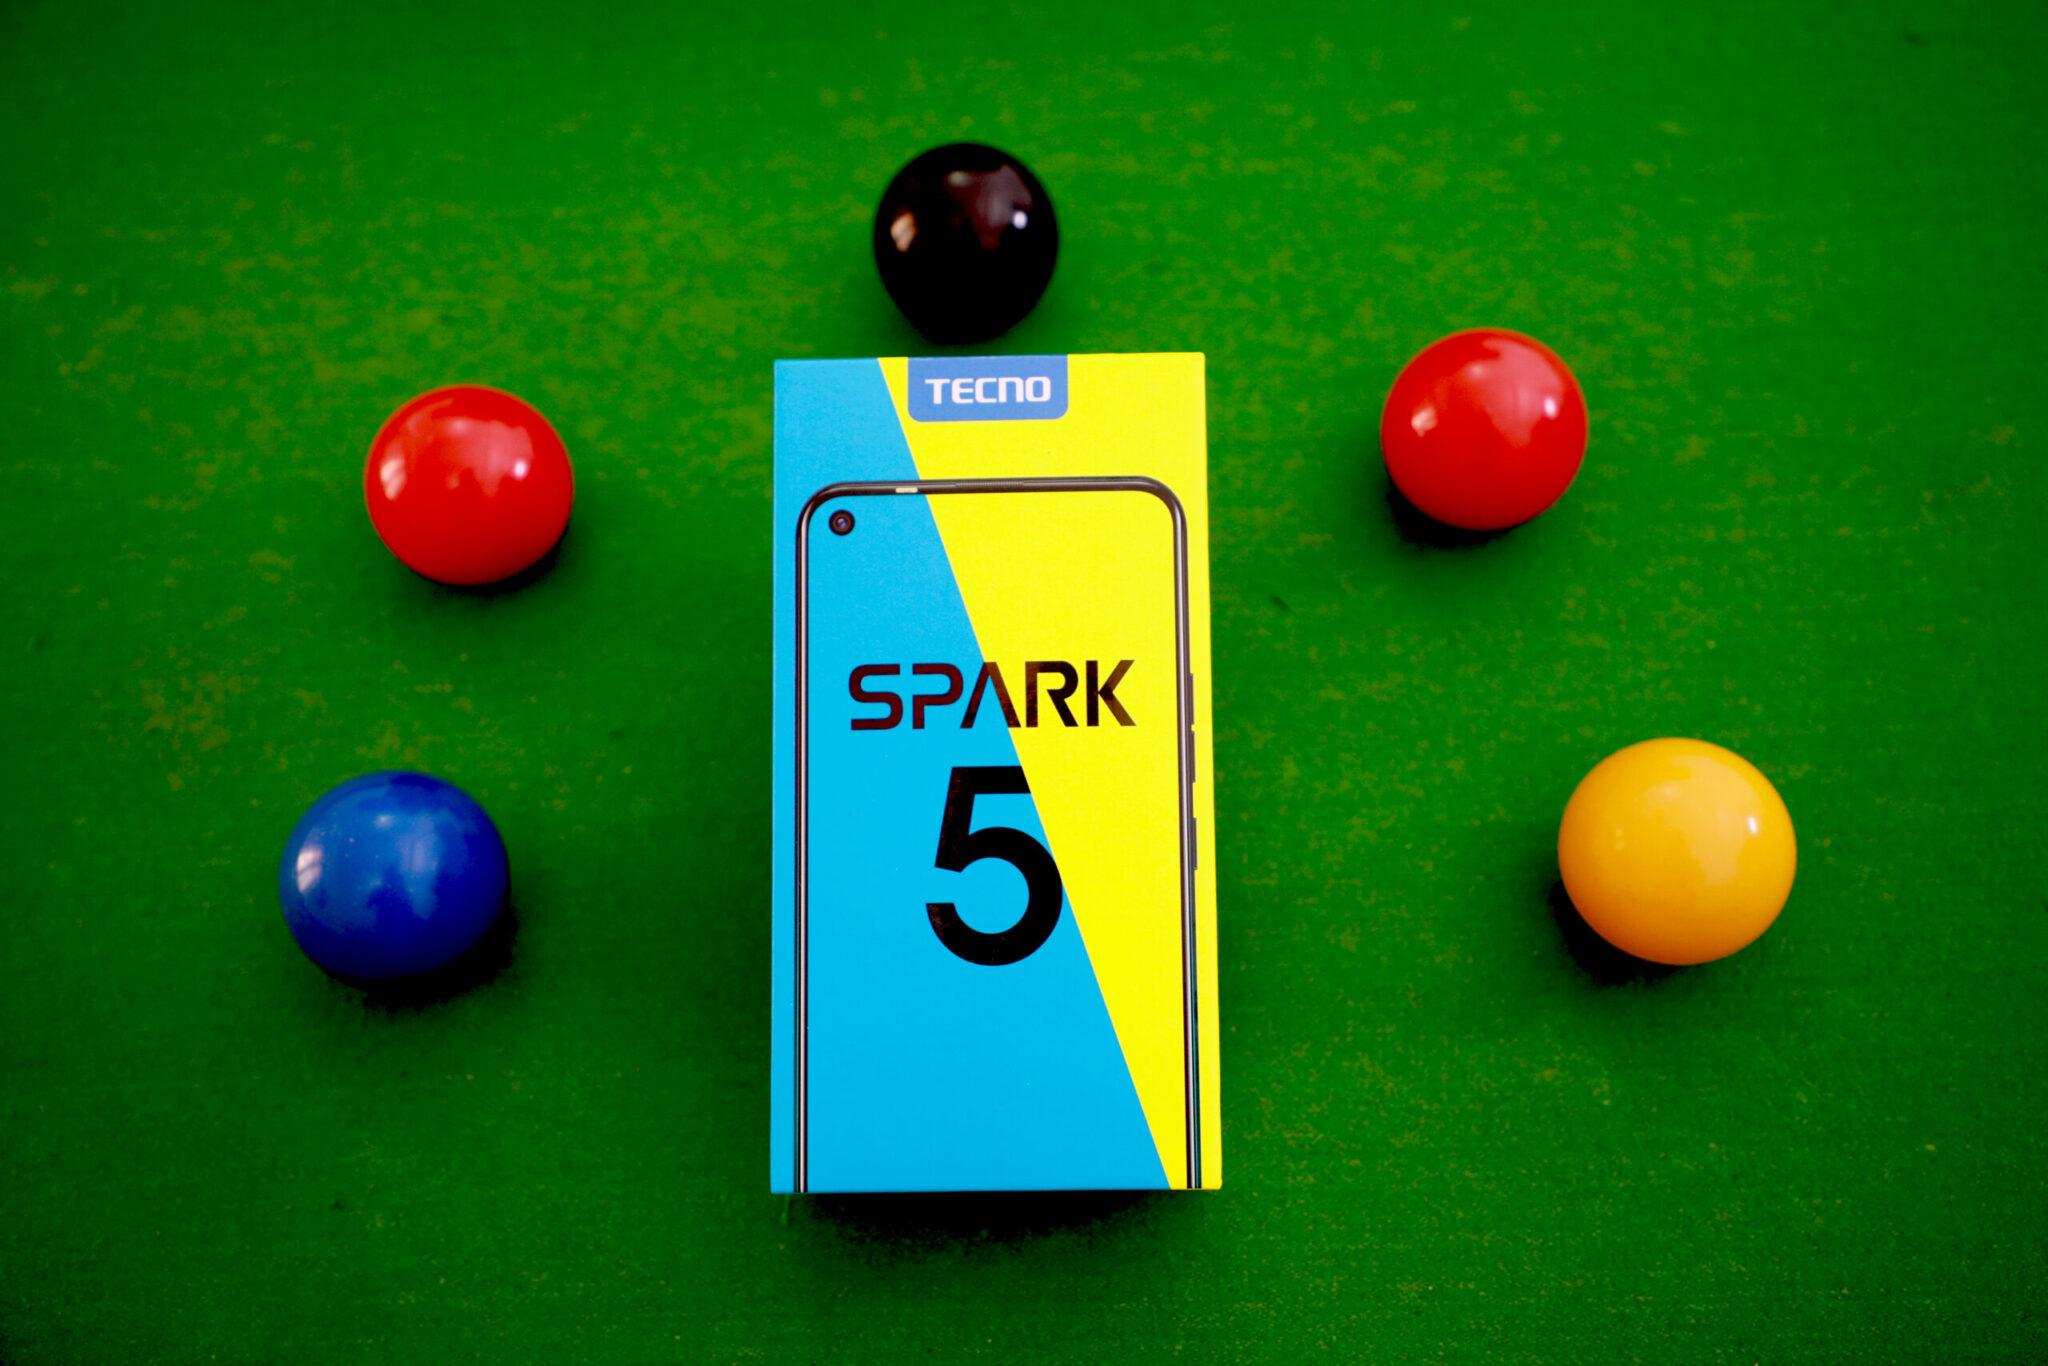 TECNO Spark 5 Key Features: Five Camera, More Angle